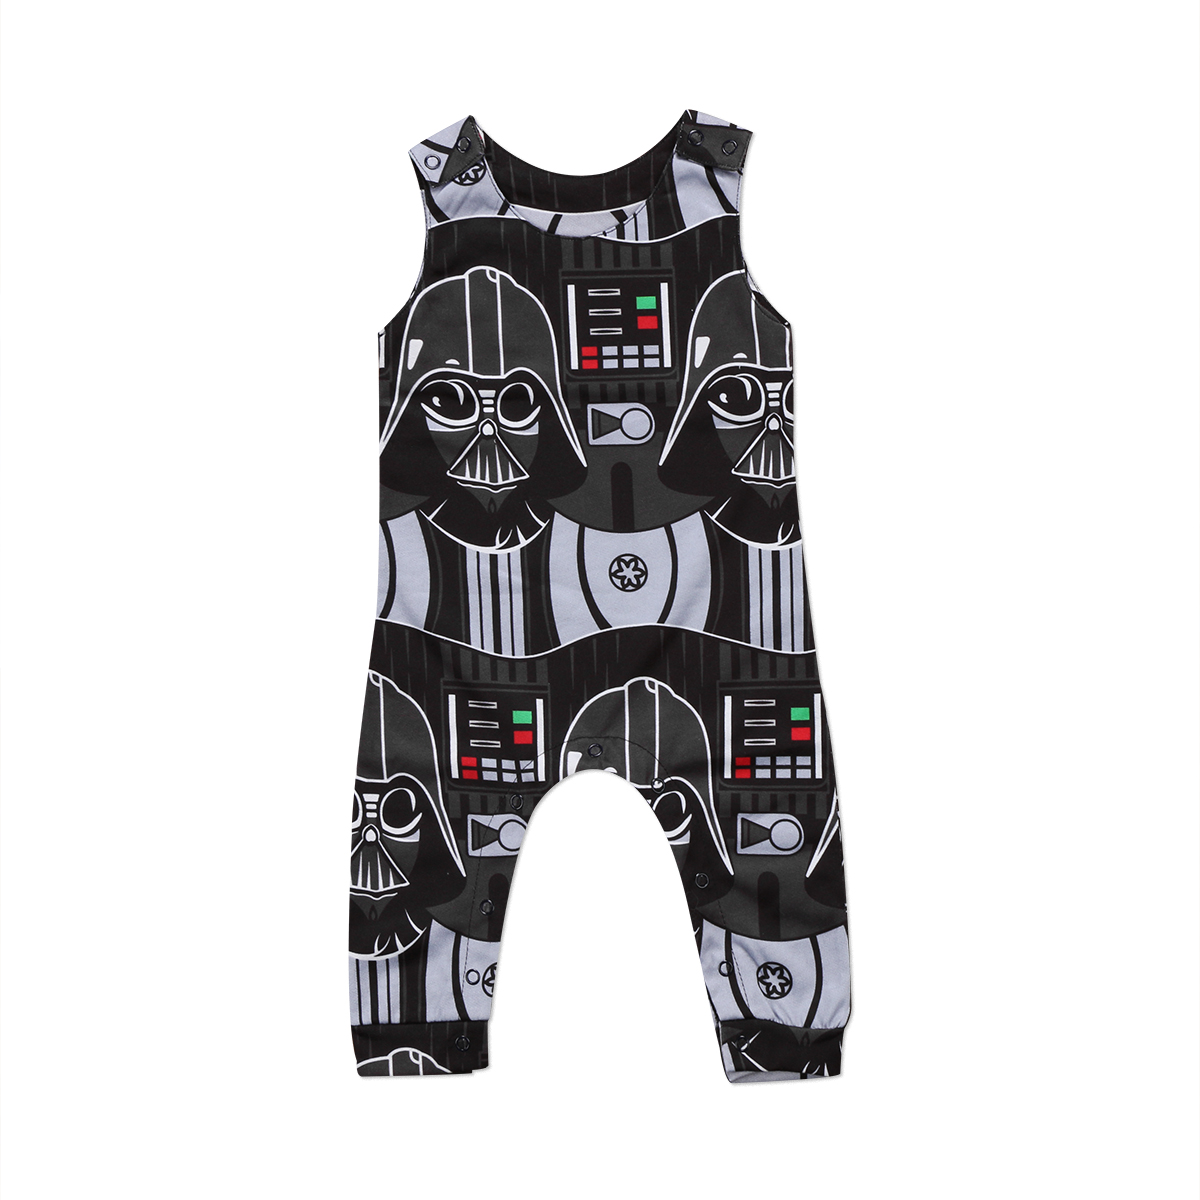 Cartoon Toddler Kids Infant Baby Boys Romper Sleeveles Novelty Jumpsuit Cotton Casual Clothes One-piece Outfits Playsuit  0-3Y